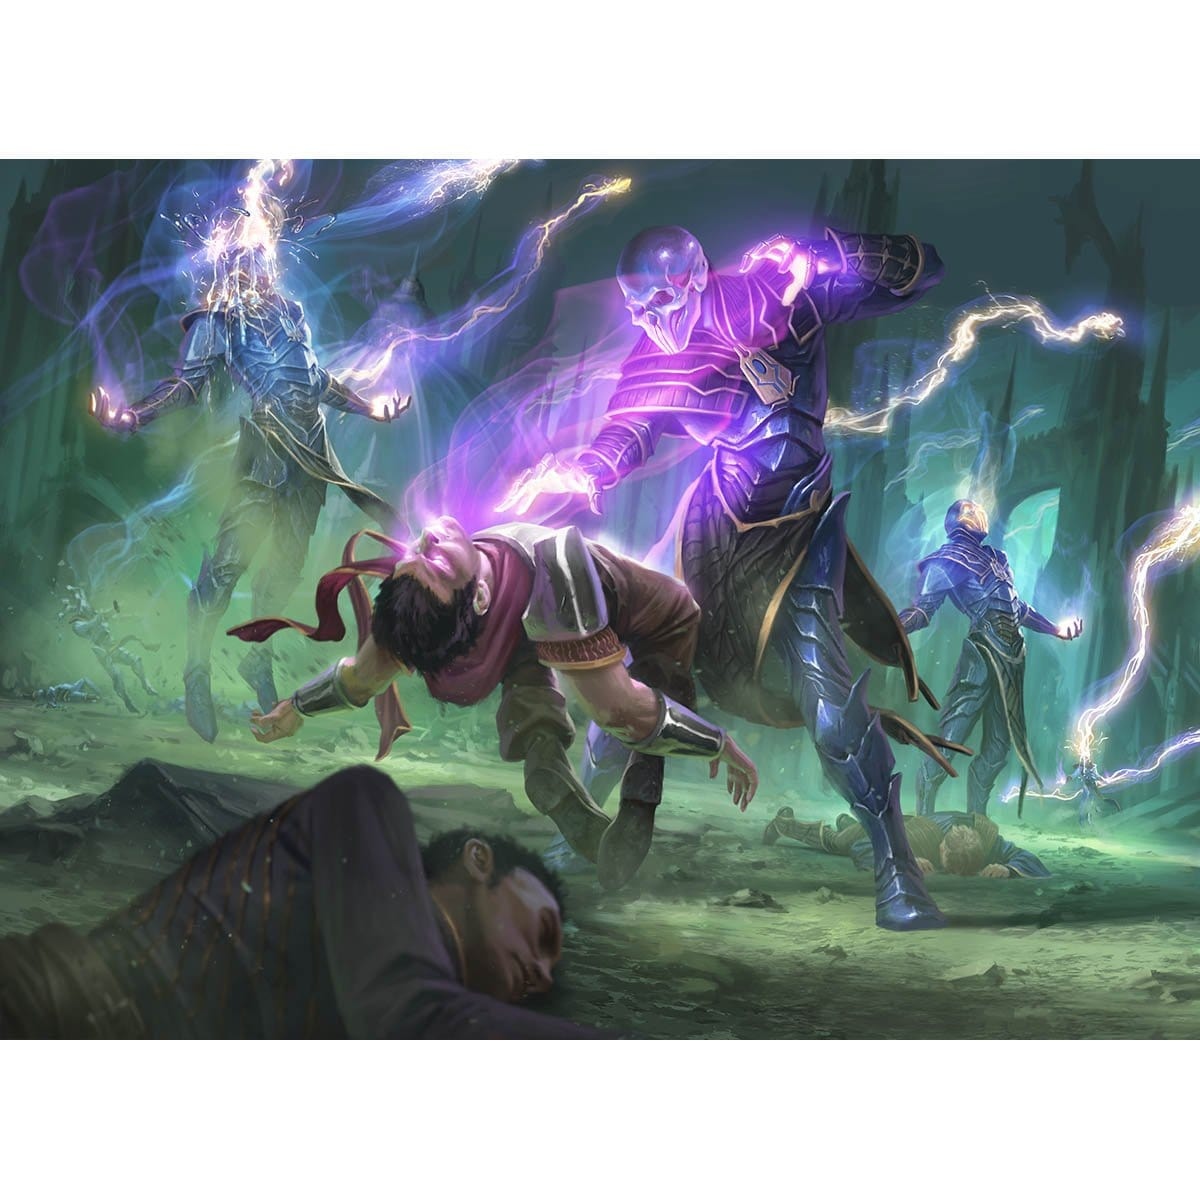 The Elderspell Print - Print - Original Magic Art - Accessories for Magic the Gathering and other card games